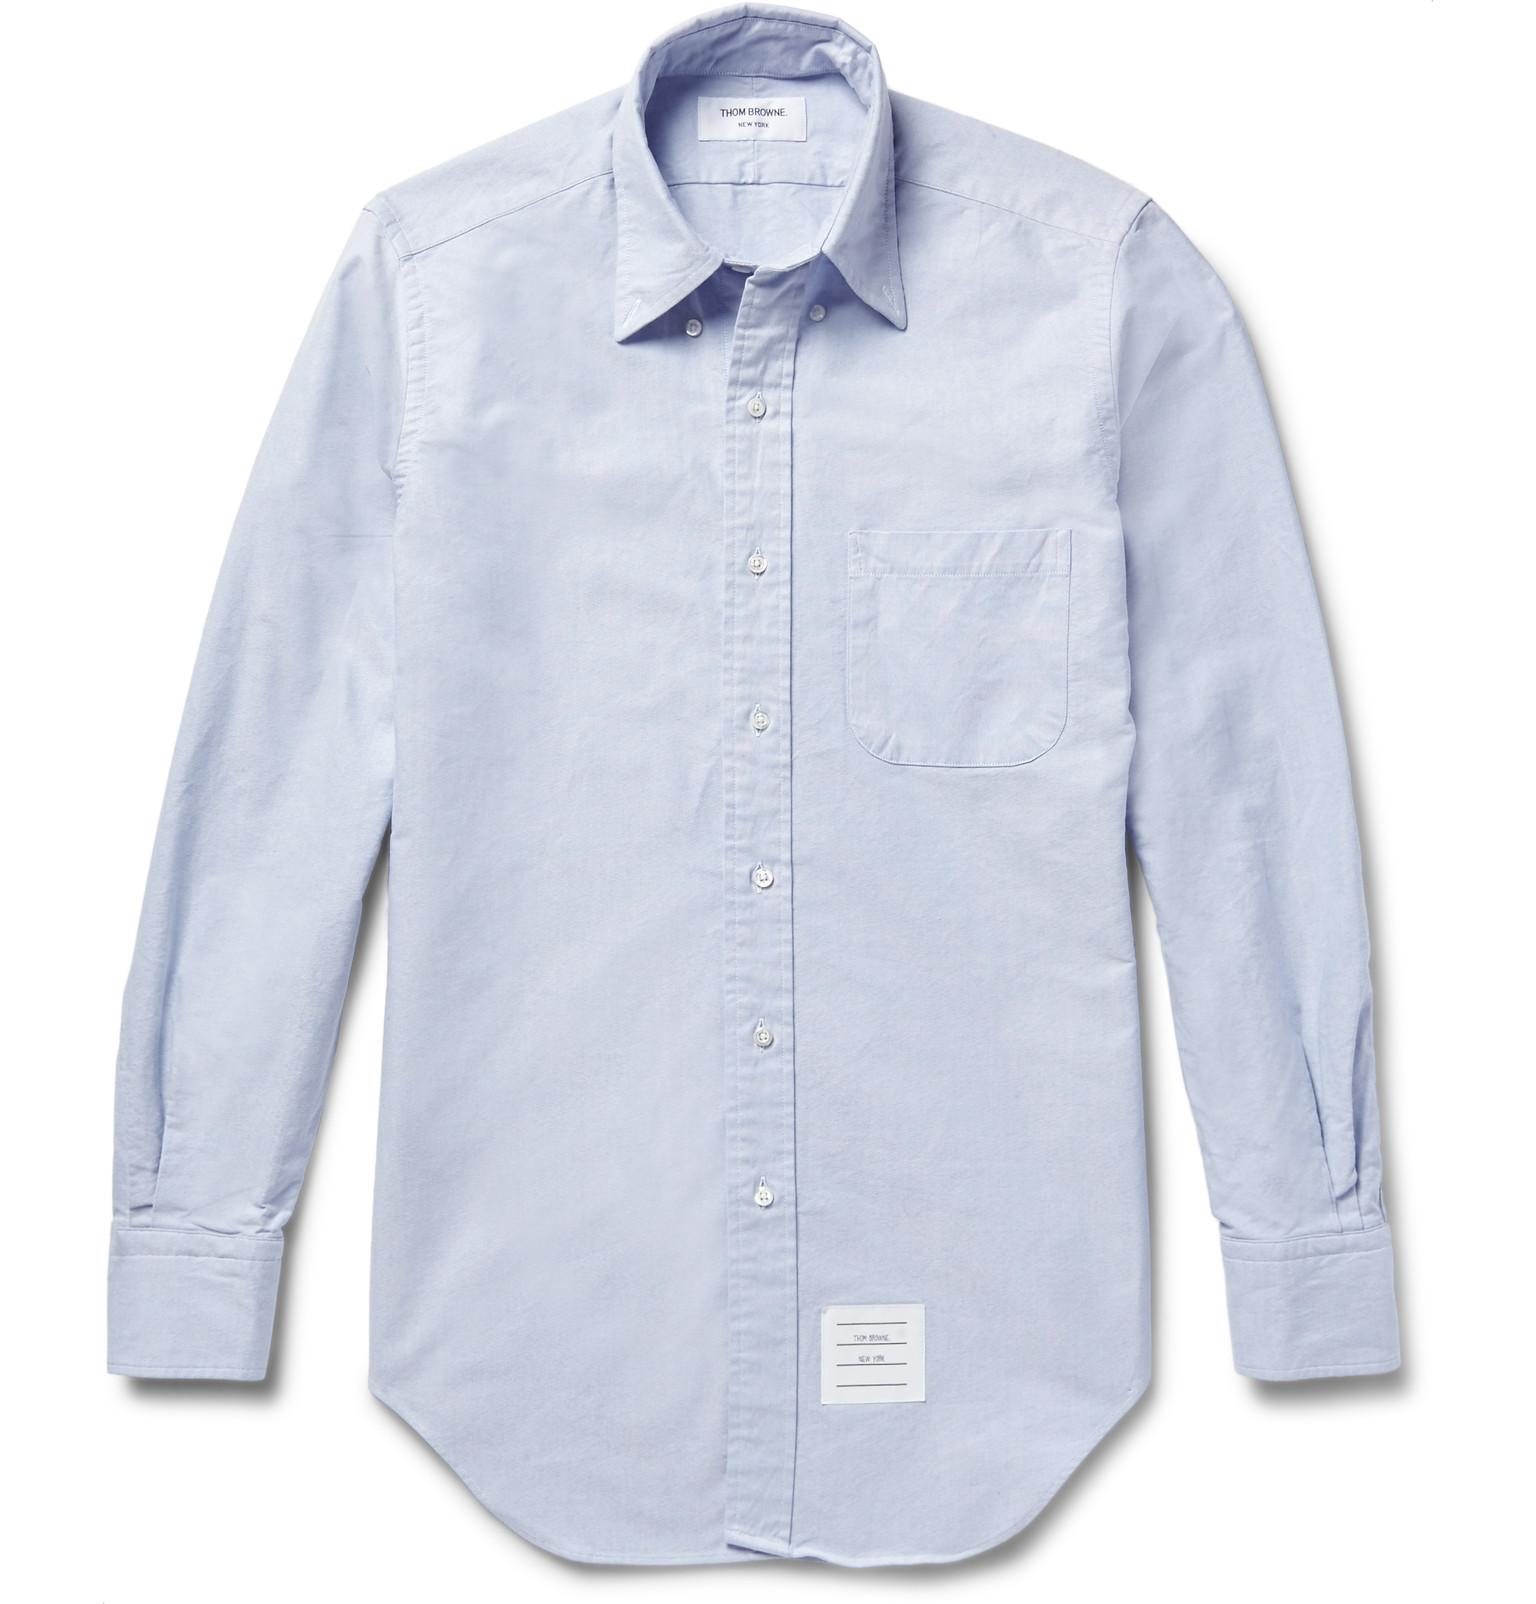 1765943de592 Thom Browne Slim-fit Button-down Collar Cotton Oxford Shirt in Blue ...